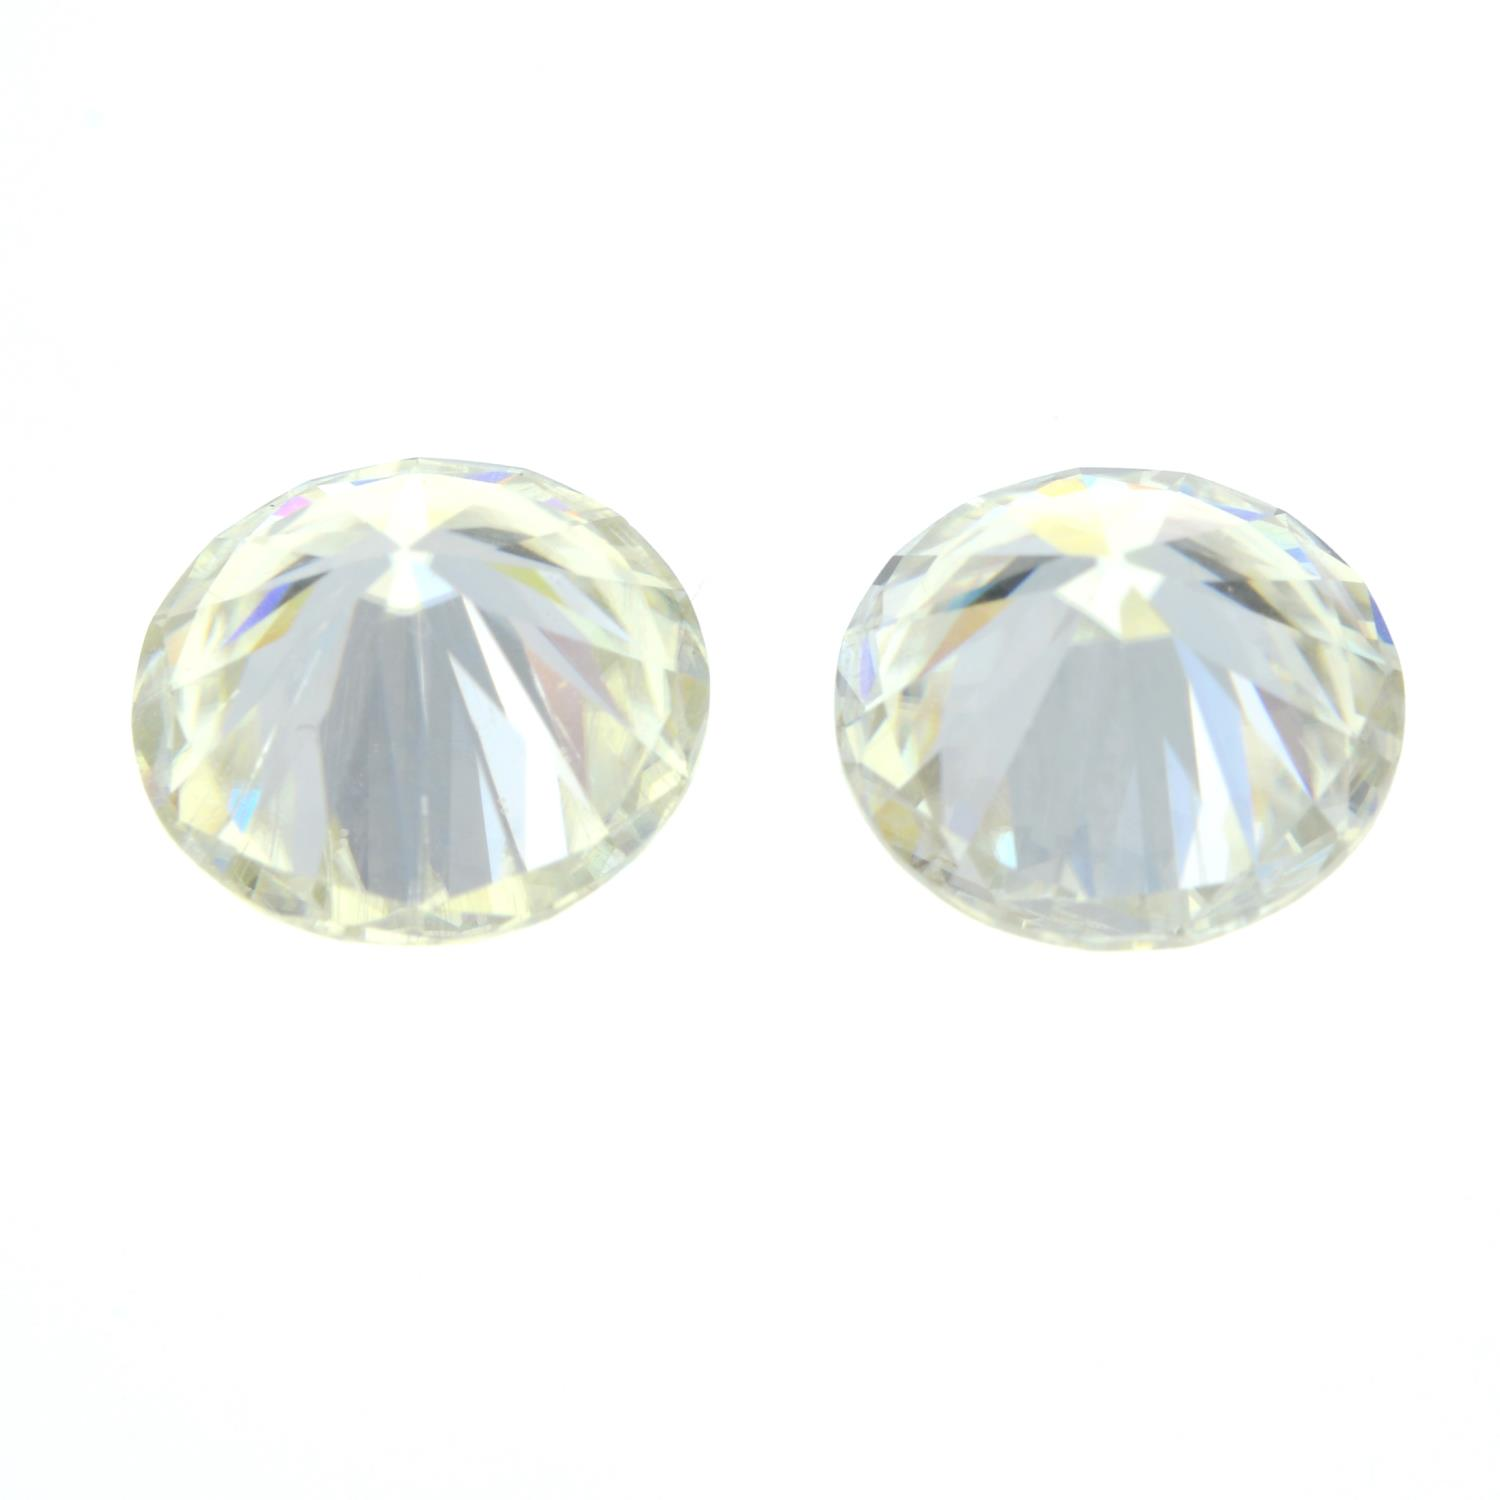 A pair of circular-shape synthetic moissanite, total weight 5.27cts. - Image 2 of 2